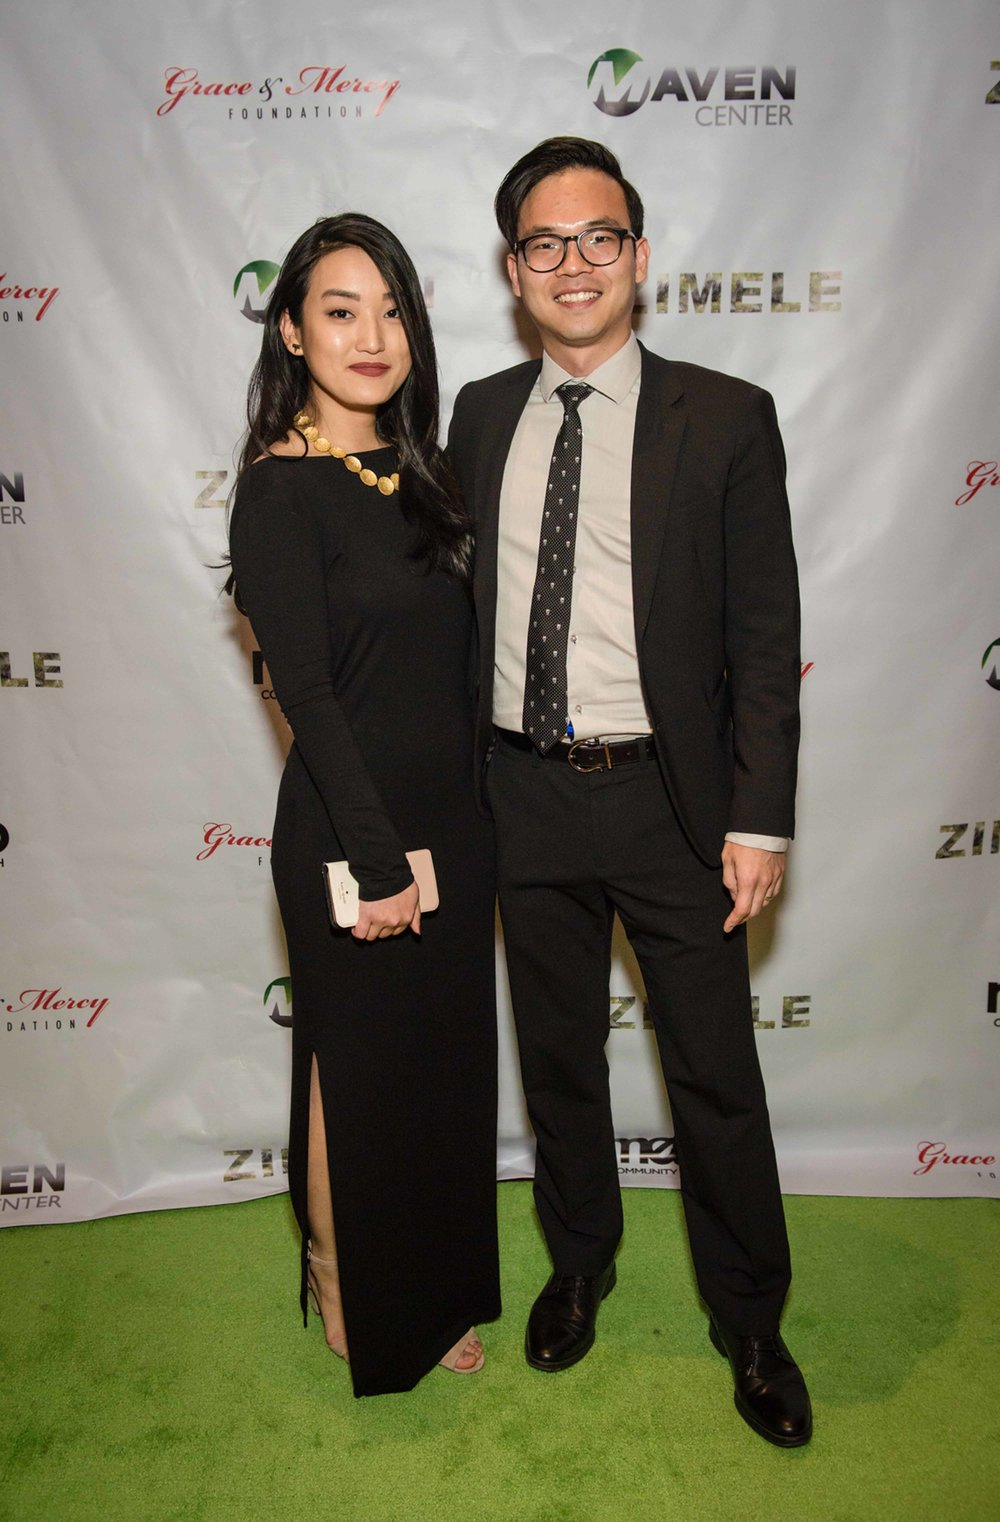 2017-10-21 Zimele USA 6th Annual Gala - Maritime Parc - Jersey City NJ_0056.jpg